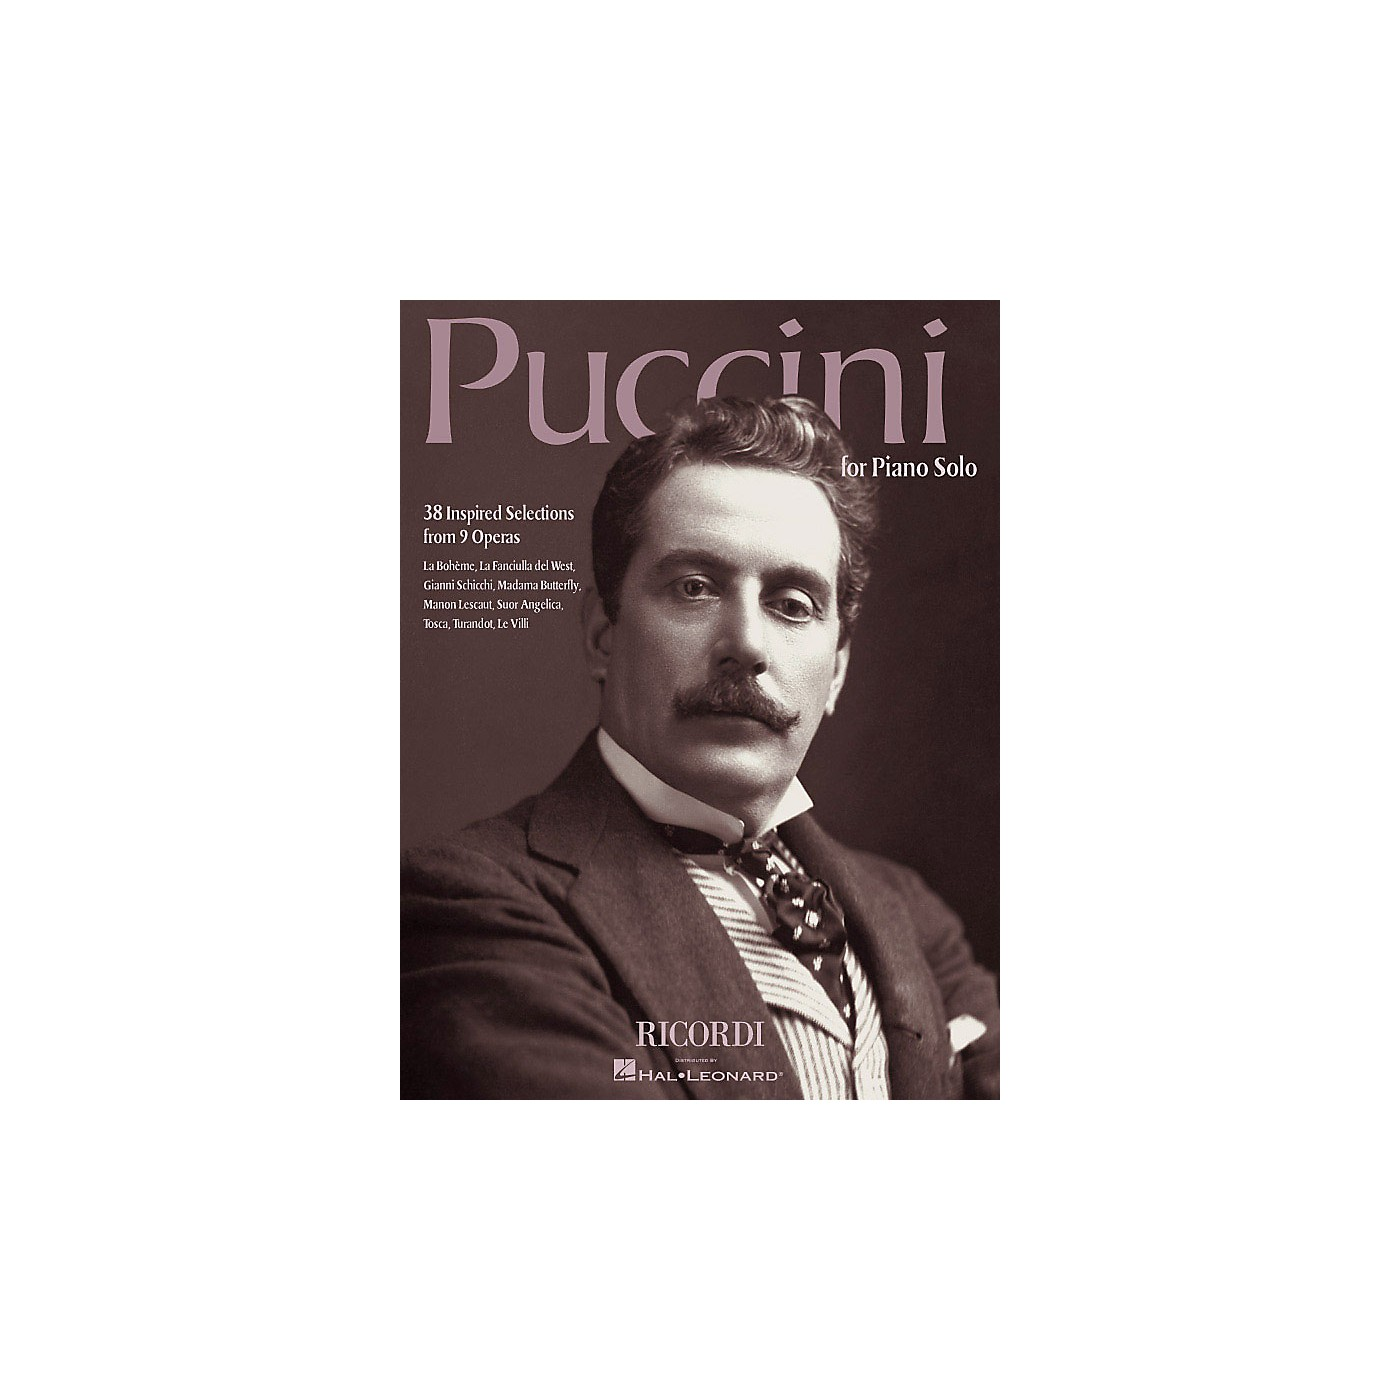 Ricordi Puccini for Piano Solo (38 Inspired Selections from 9 Operas) Misc Series thumbnail